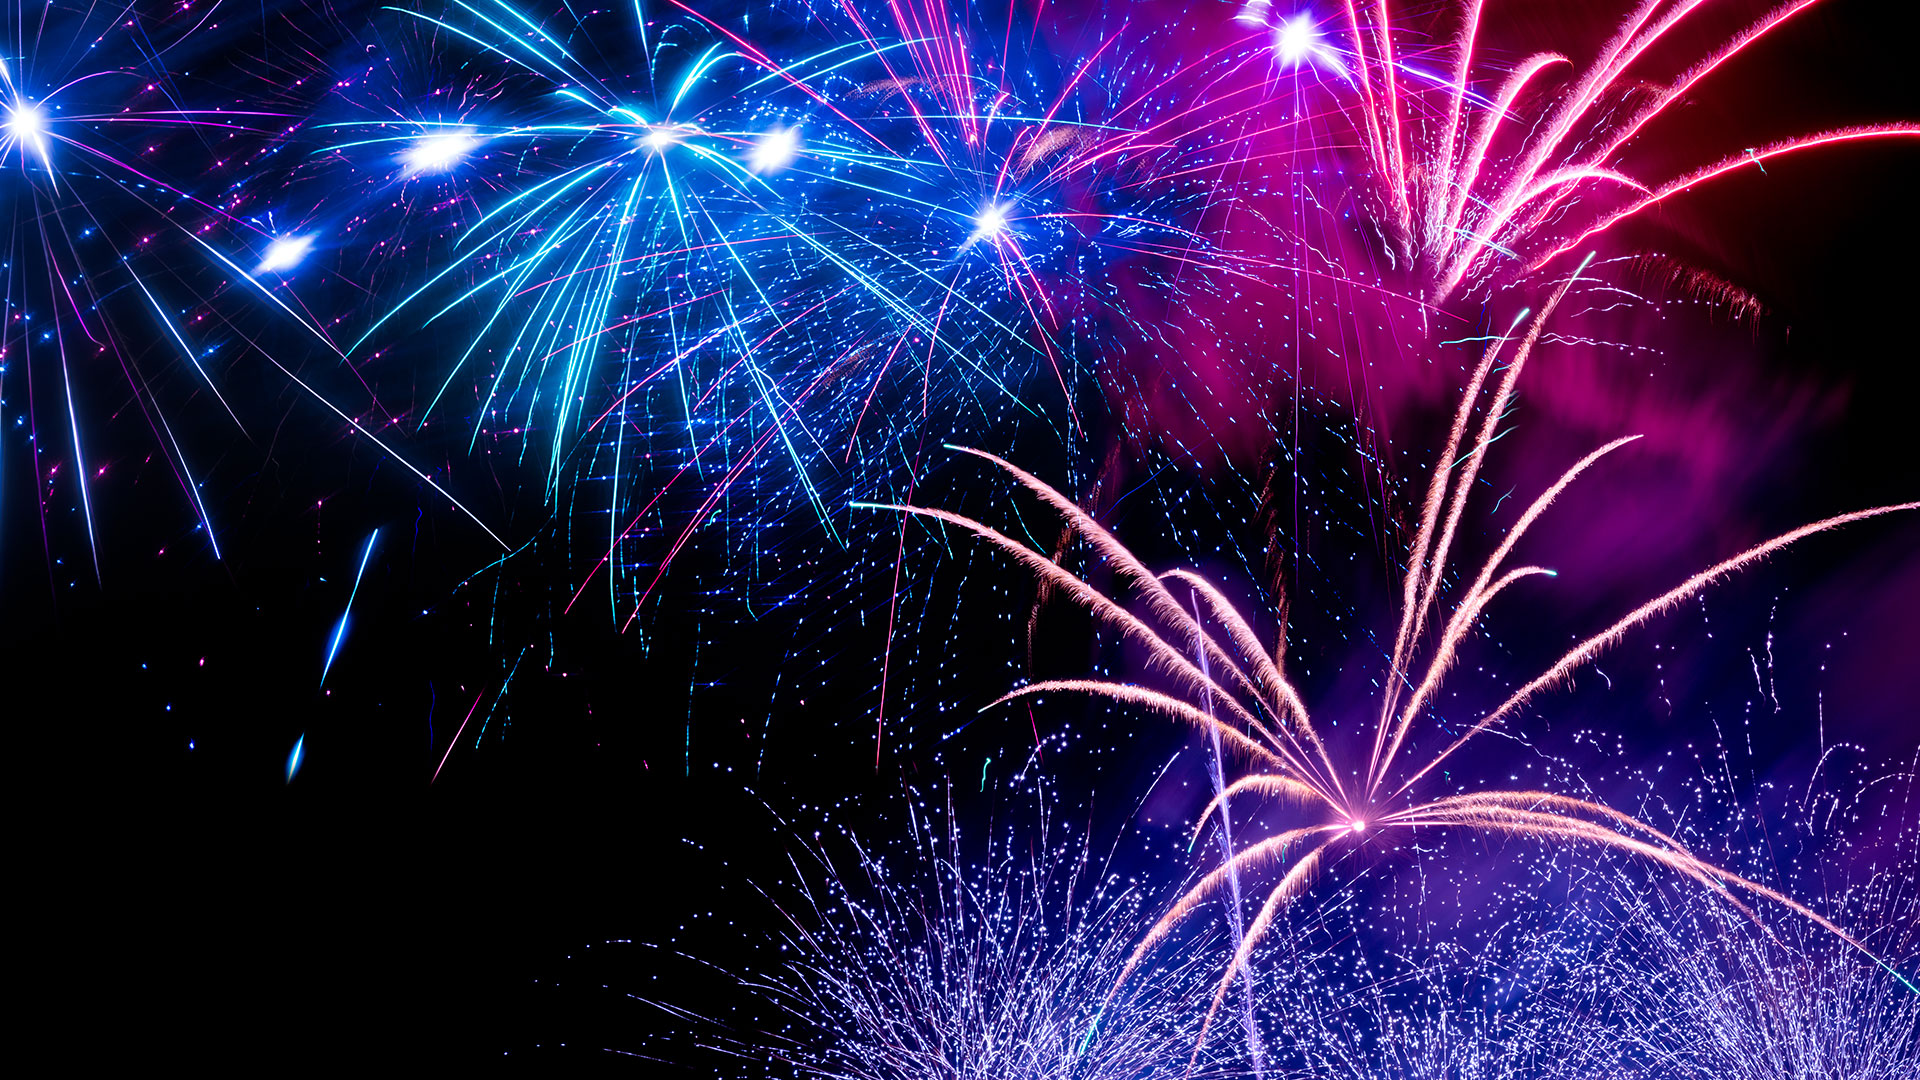 Best places to view fireworks in the Sacramento area